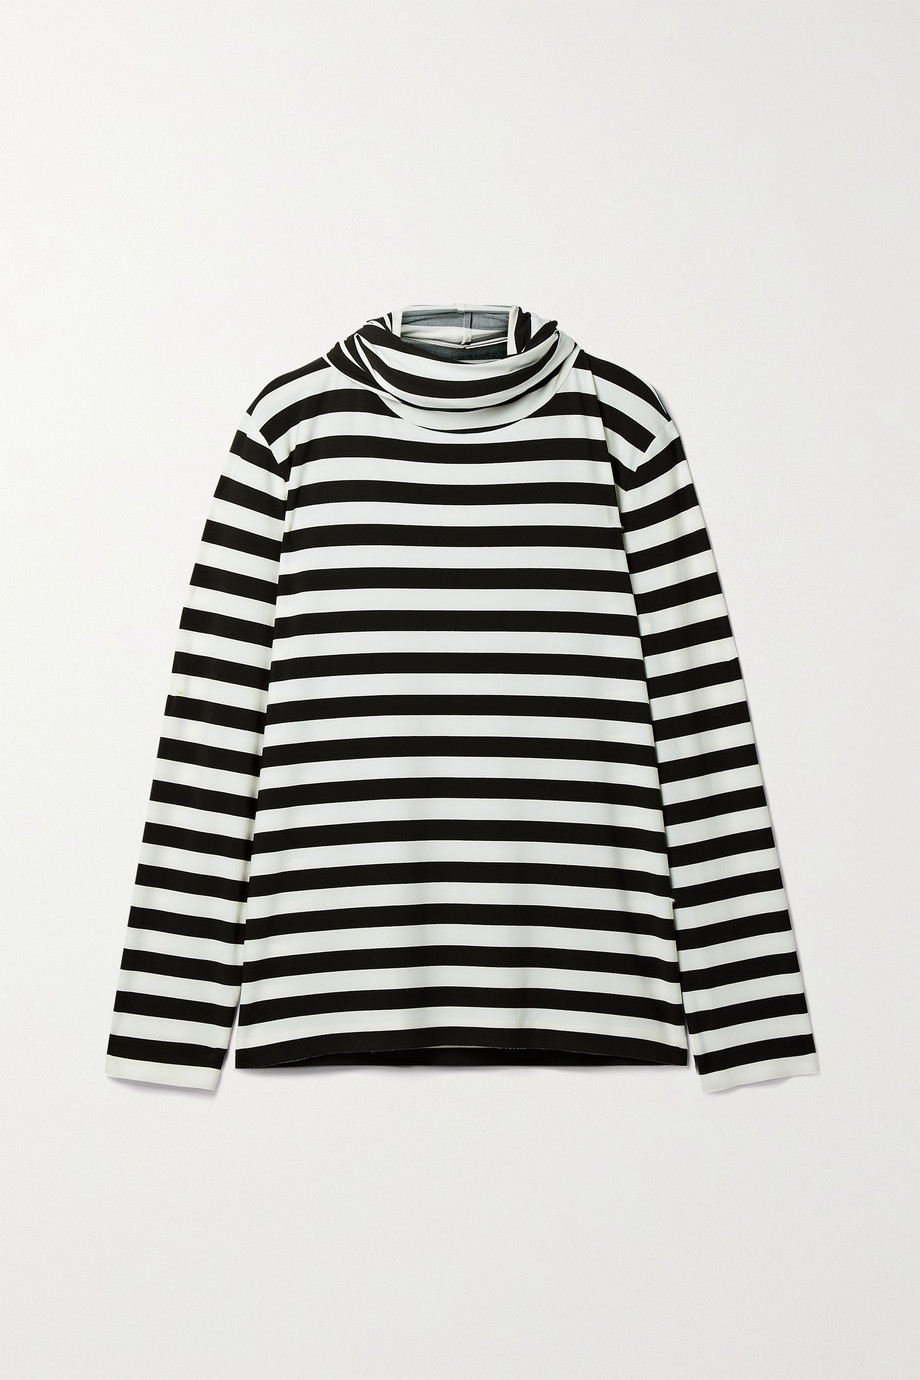 Norma Kamali Striped stretch-jersey turtleneck top